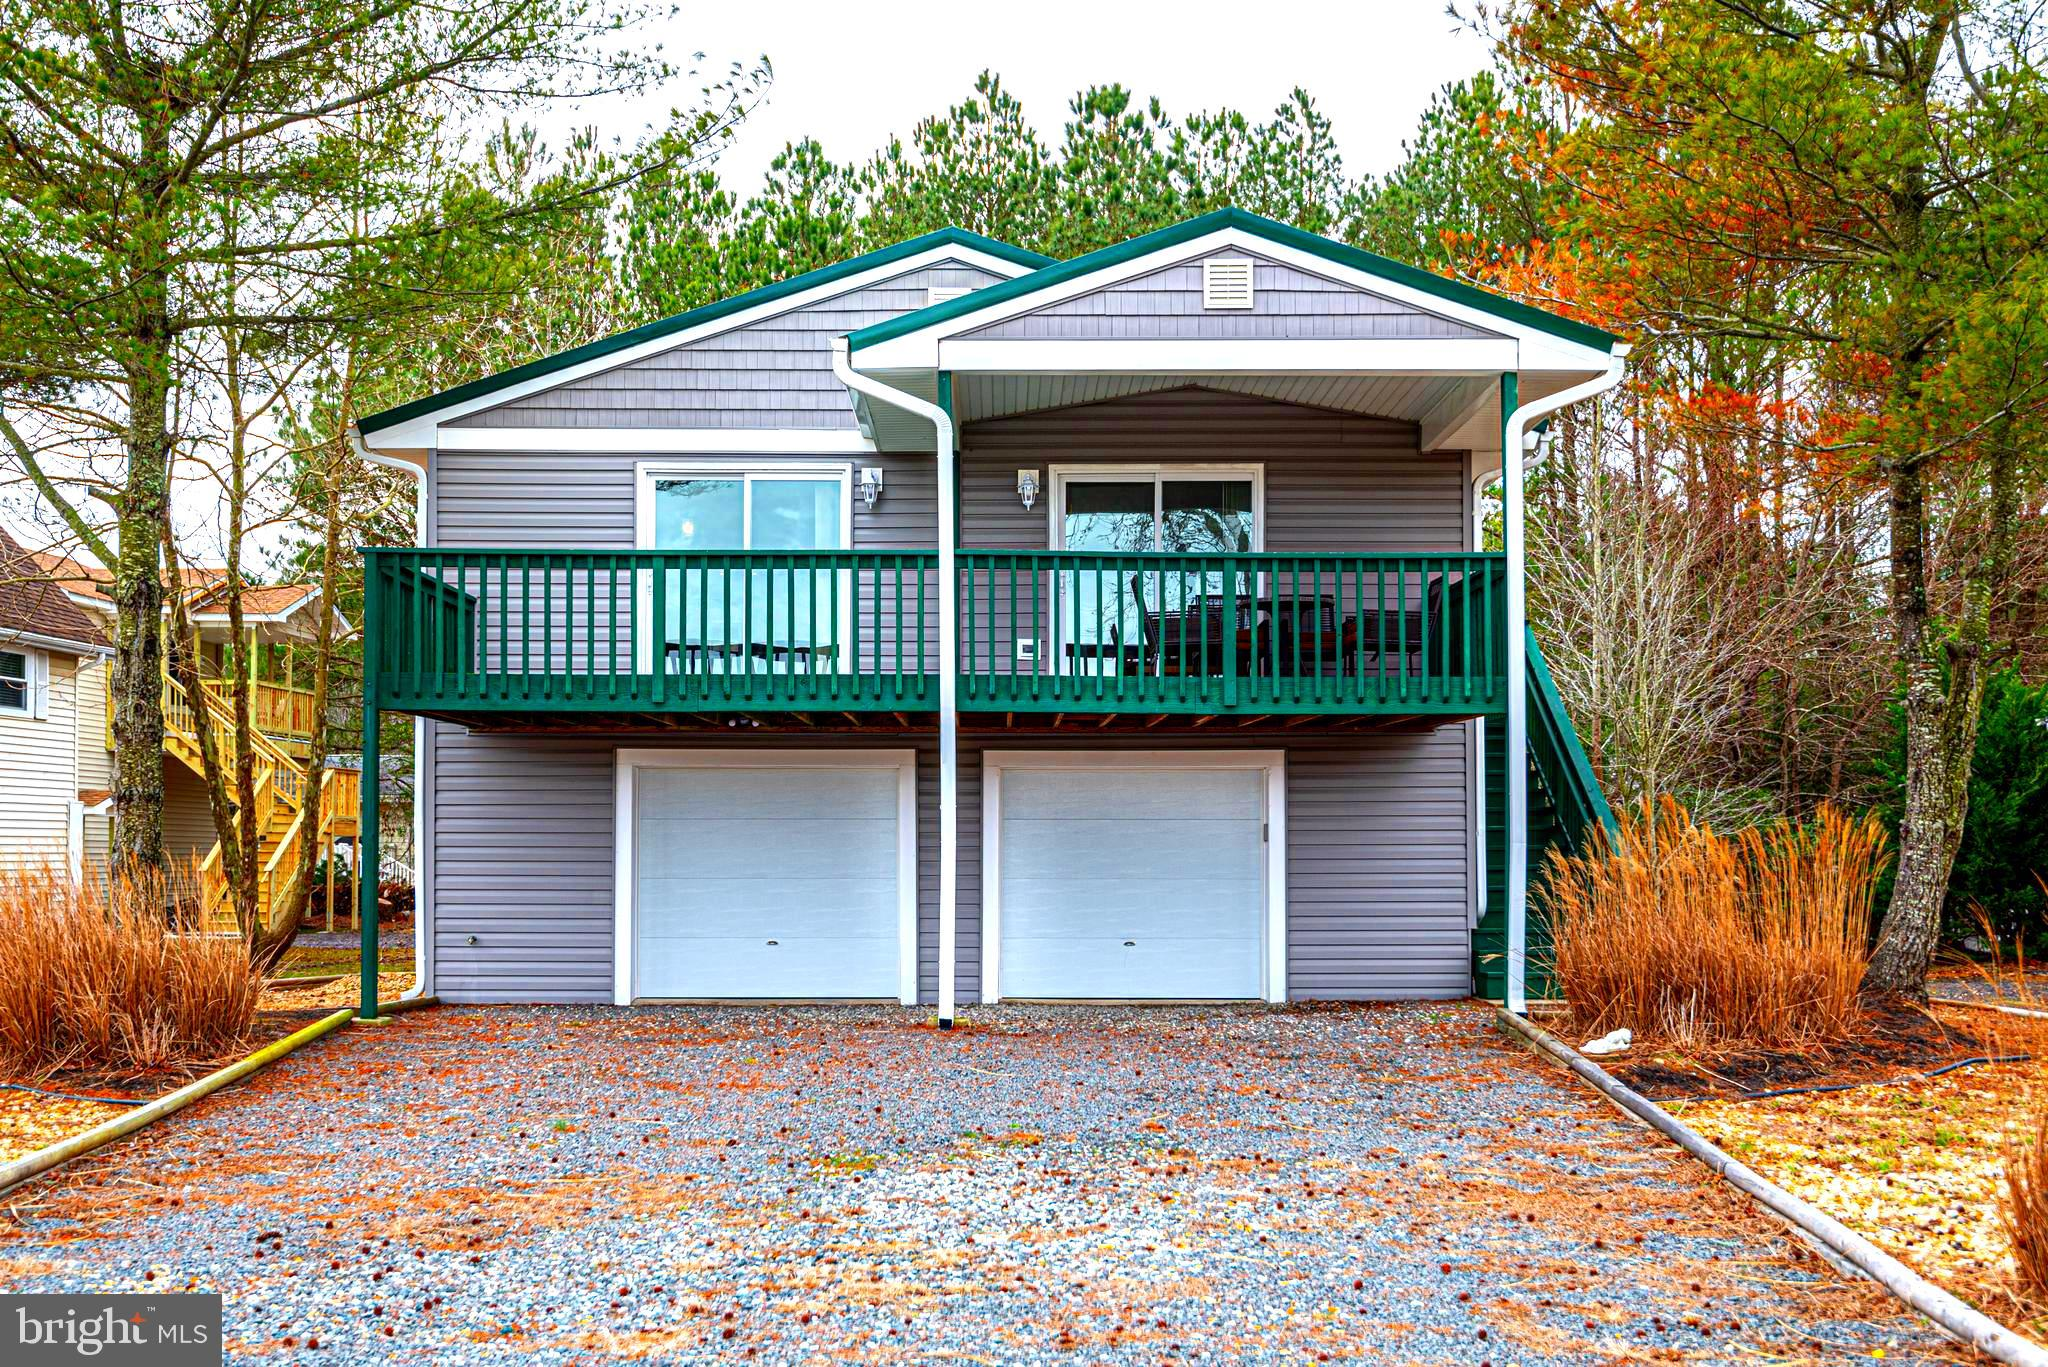 """""""JUST REDUCED $15K"""" Beautiful raised rancher has been totally renovated in 2019 with canal water views over looking Pintail Park from the second floor balcony. This gorgeous home features new vinyl laminate & travertine tile floors, granite counters, island bar w/seating, new cabinets, electric FP w/Real Stone, vaulted ceiling, MBA w/breath taking marble tile flooring & walls, 10 jet Jacuzzi tub, new metal roof, new vinyl siding, new windows & sliding doors, new gutters(helmet guard) & down spouts, new windows & sliding glass doors, Heat Pump(2018), new landscaping & under home garage that could fit up to 4 cars. New bonus room on the first floor could be Man/She cave or exercise room. Furnishings are negotiable. Minutes from the beach in Ocean City. Make this your next stop in Ocean Pines."""